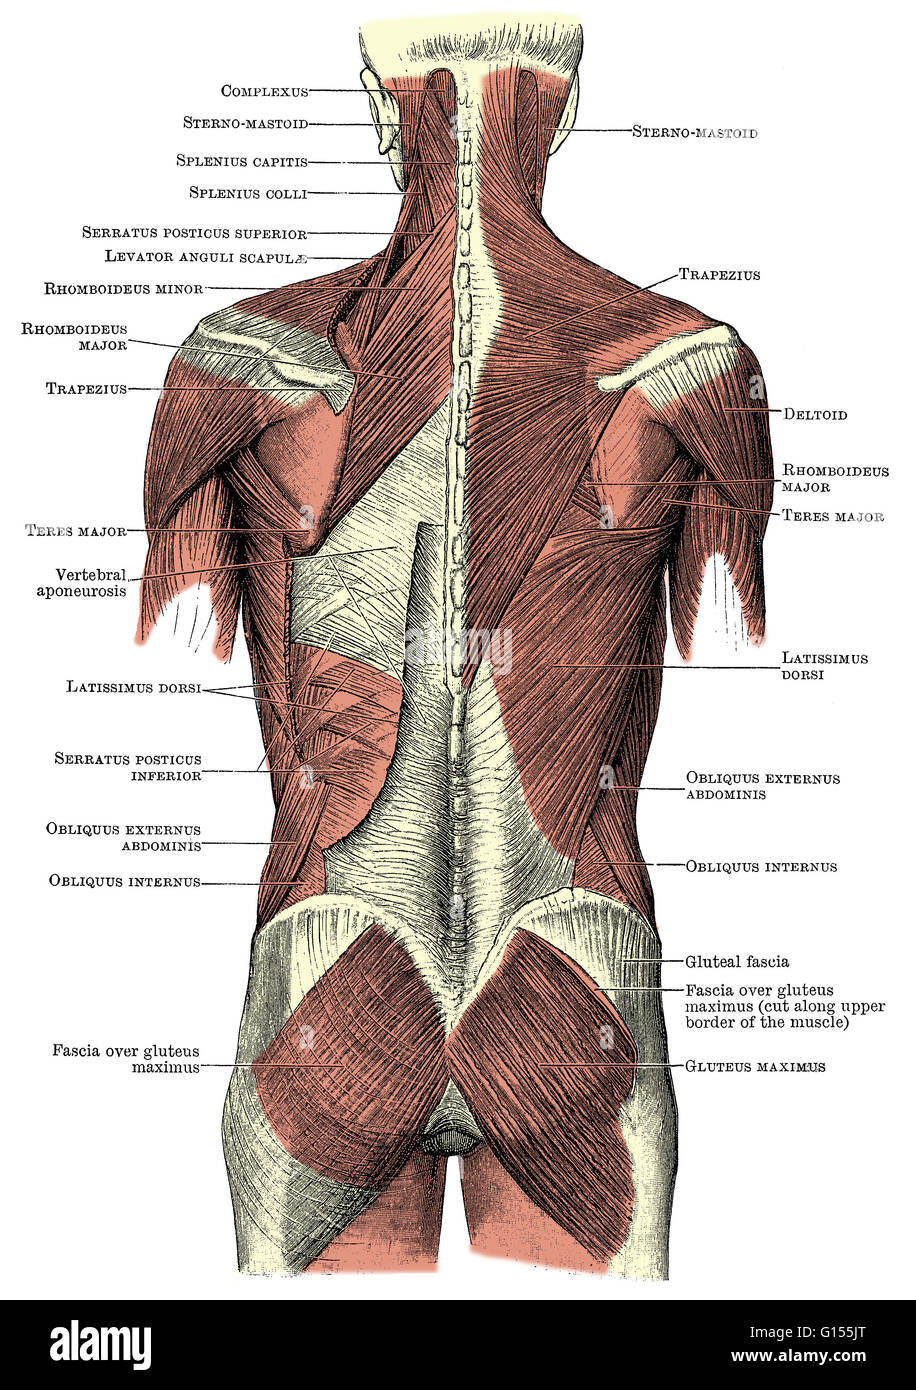 Labeled Illustration Muscles Human Back Imágenes De Stock & Labeled ...